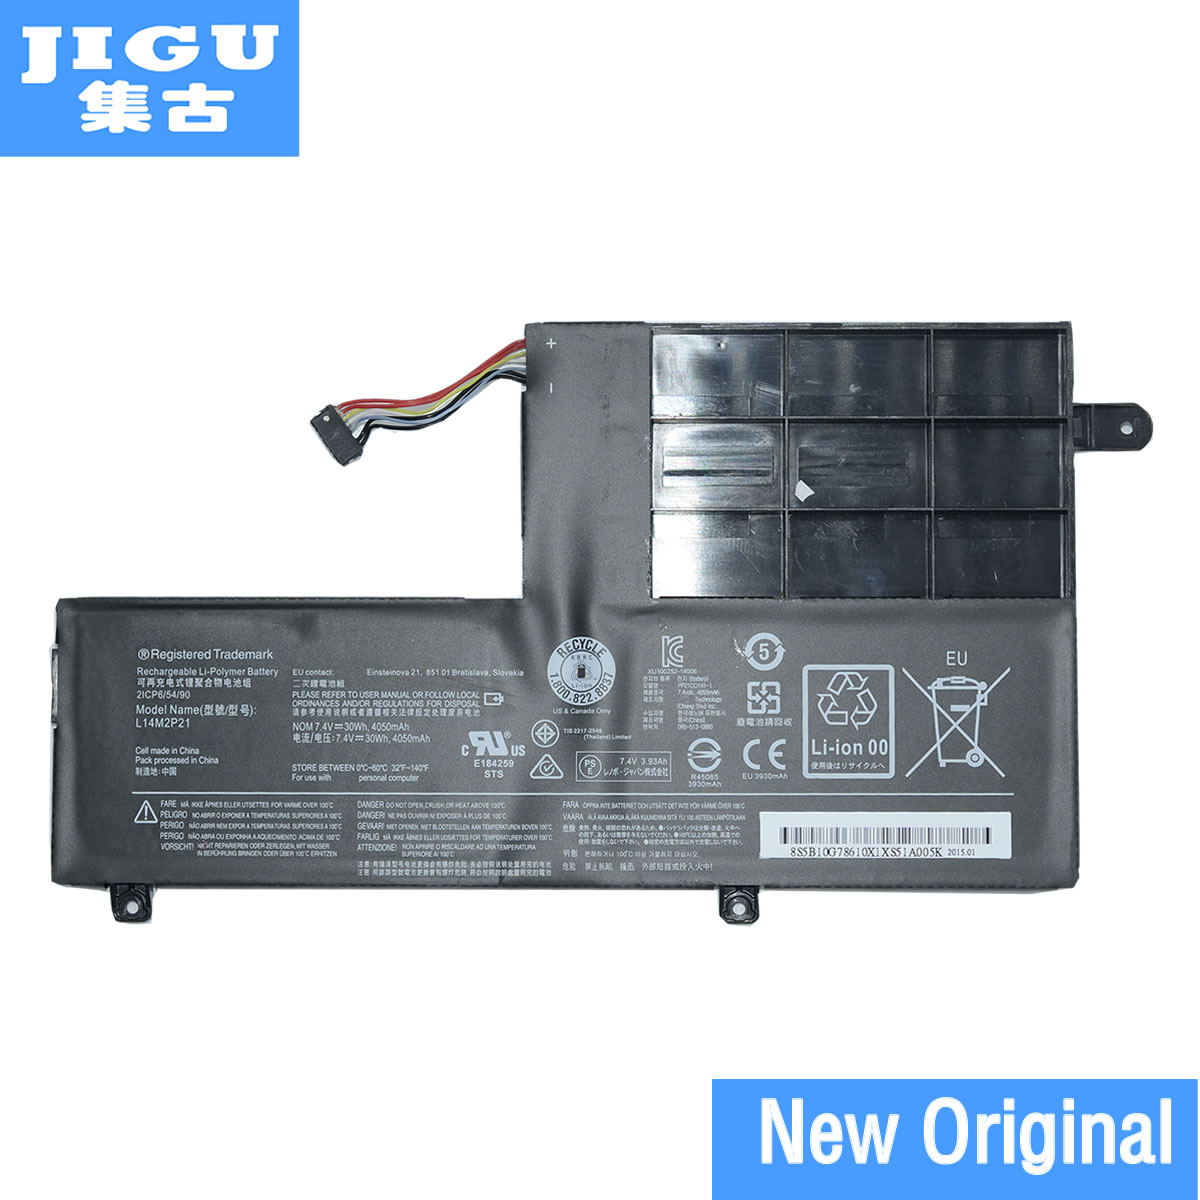 JIGU laptop battery L14L2P21 L14M2P21 FOR LENOVO for Ideapad 510S-14 510S-14ISK U41-70 S41 yoga 500 garda decor бра